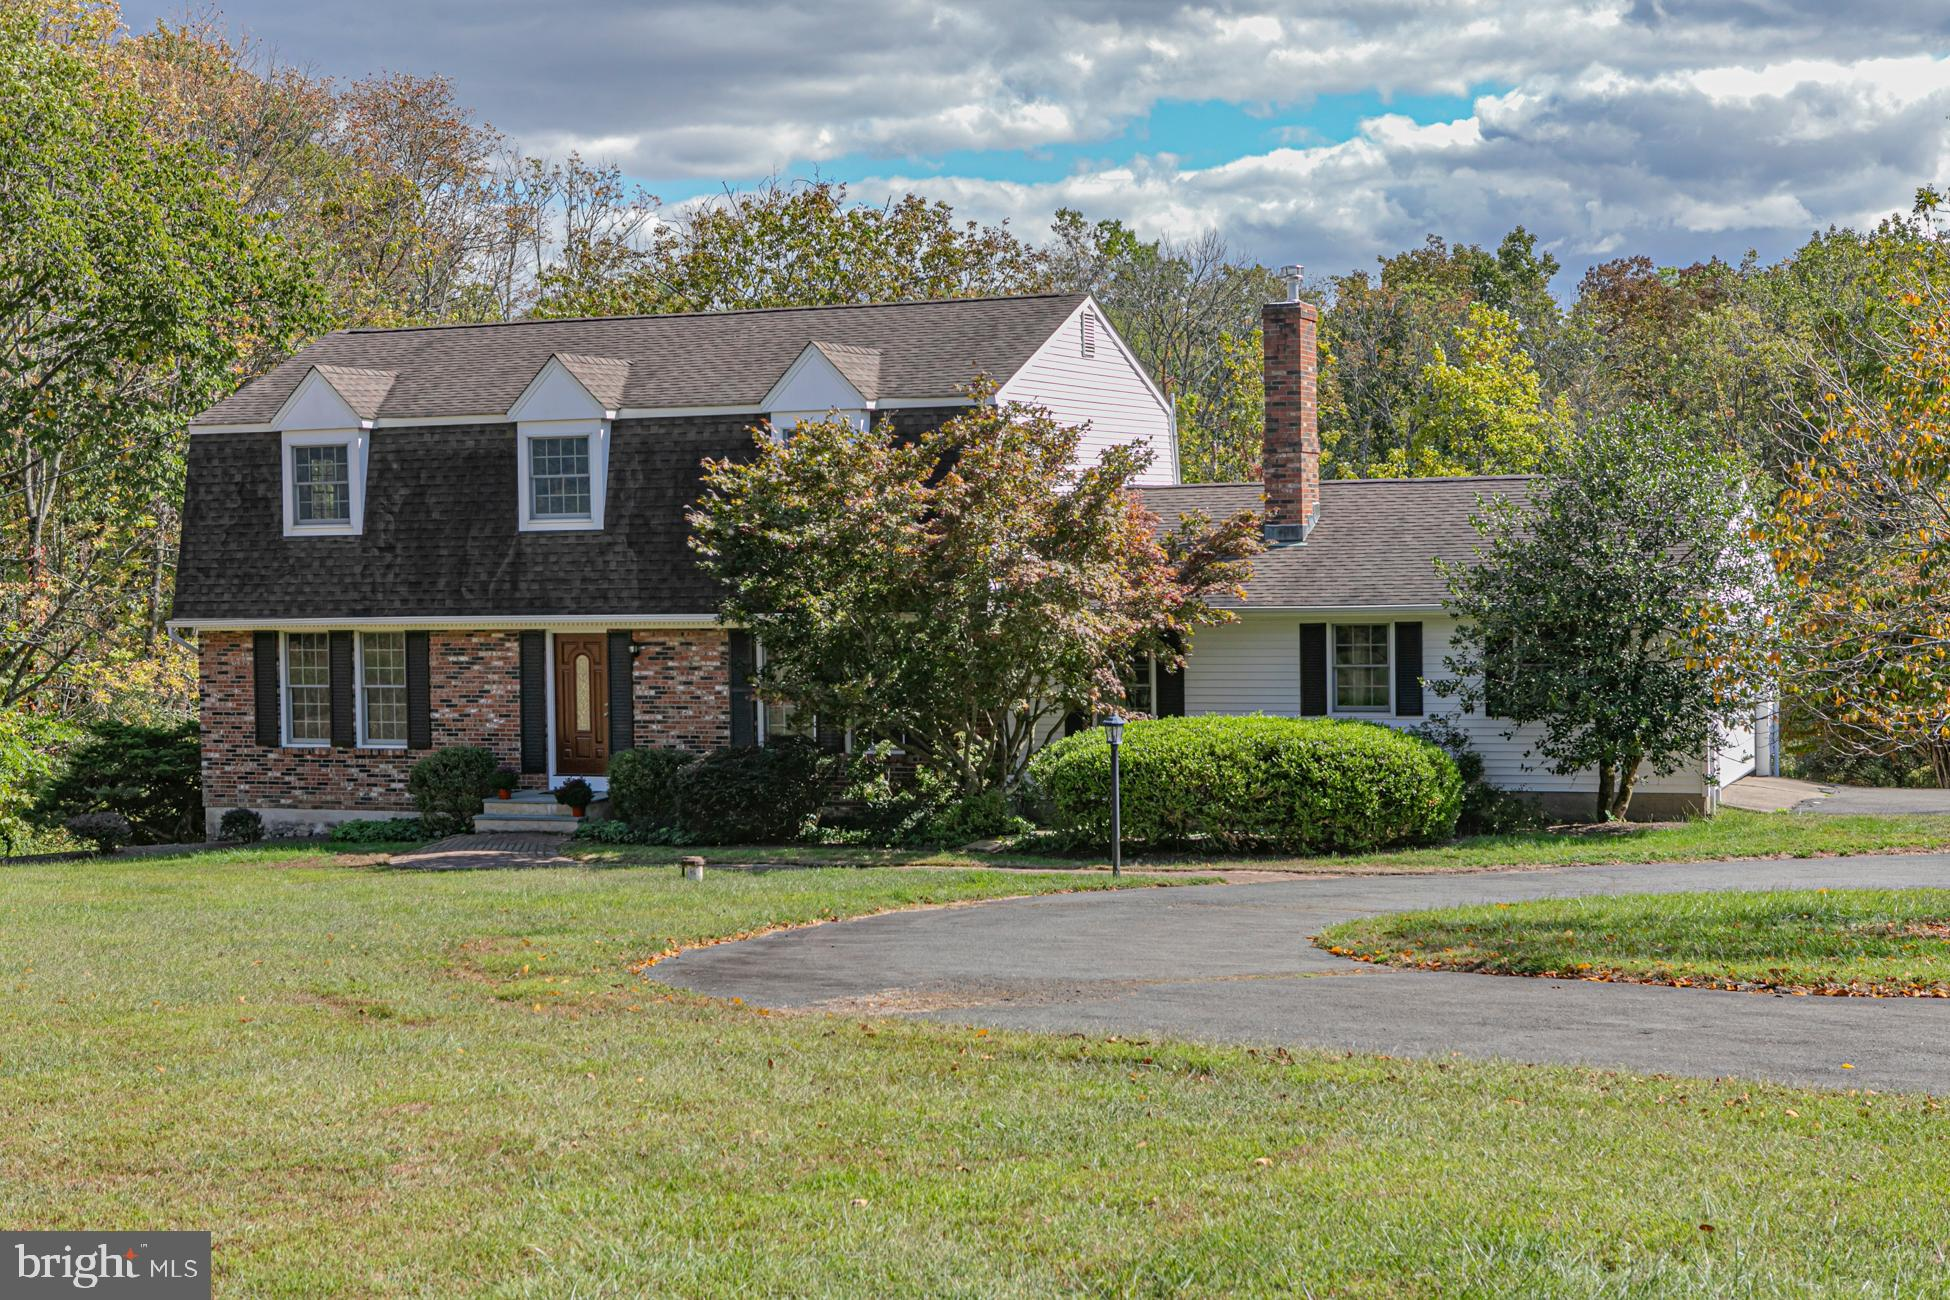 110 FEATHERBED LANE, HOPEWELL, NJ 08525